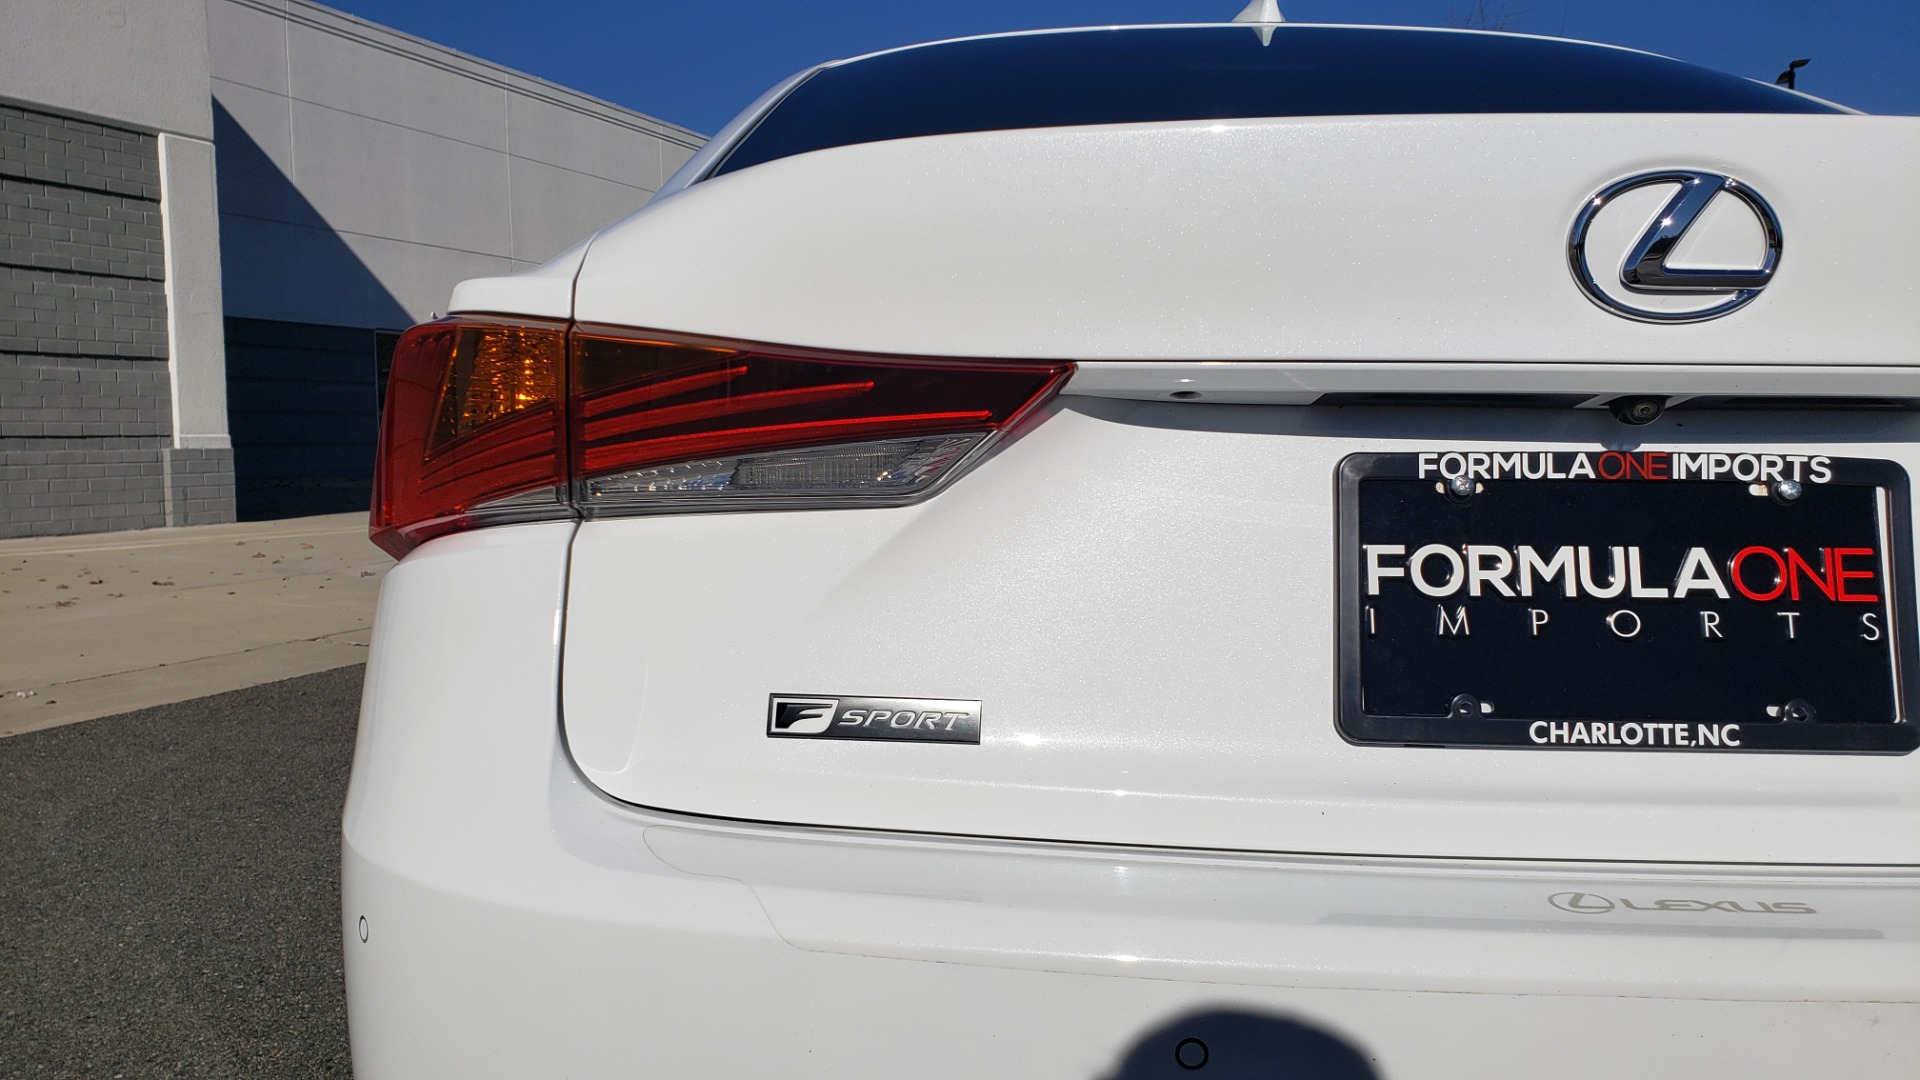 Used 2018 Lexus IS 300 F-SPORT / BSM / SUNROOF / REARVIEW / 18IN WHEELS for sale Sold at Formula Imports in Charlotte NC 28227 20